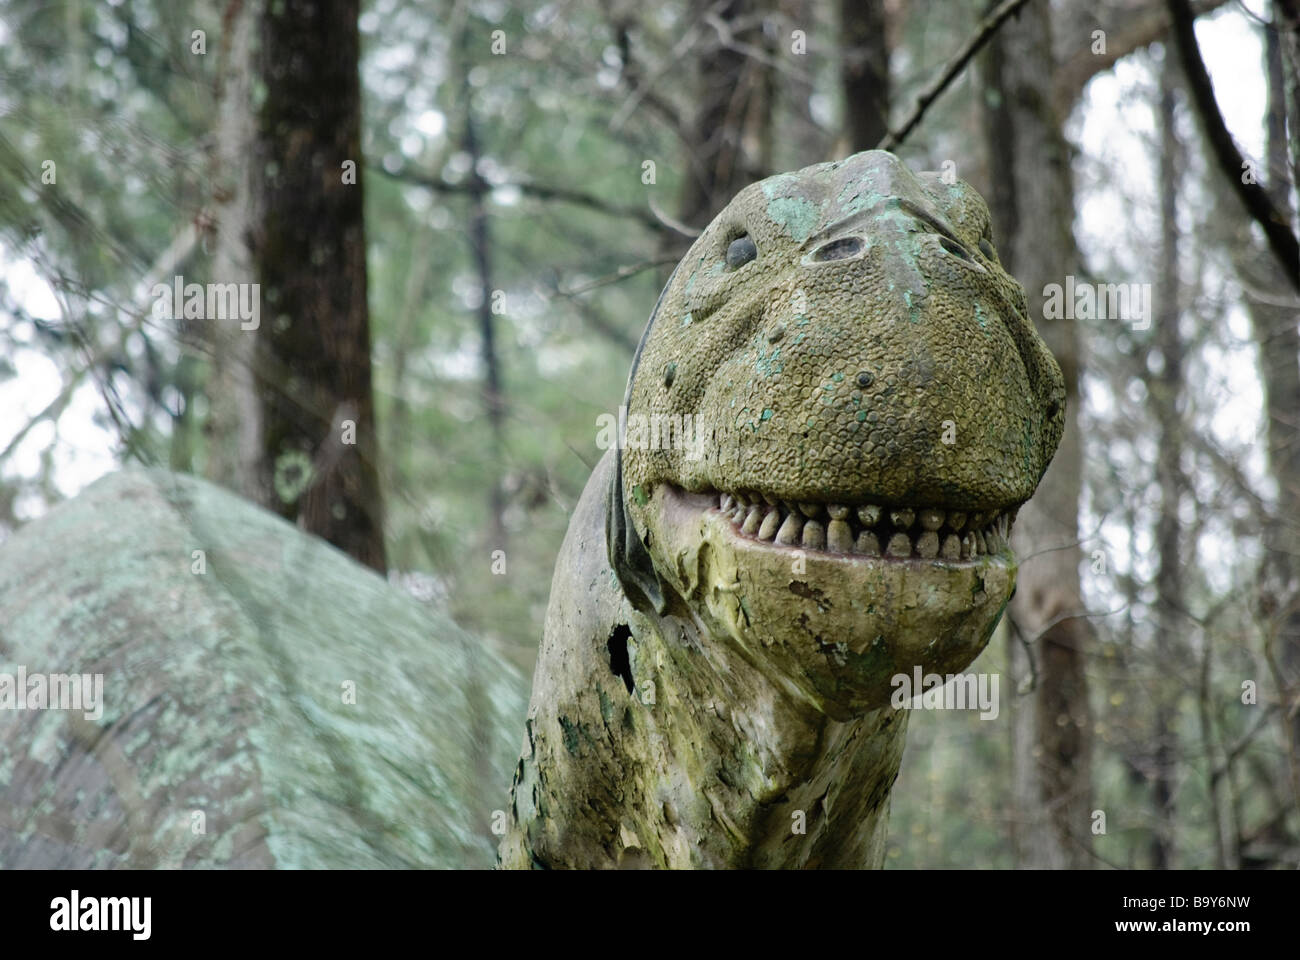 Head of a Neglected Statue of a Brontosaurus dinosaur - Stock Image